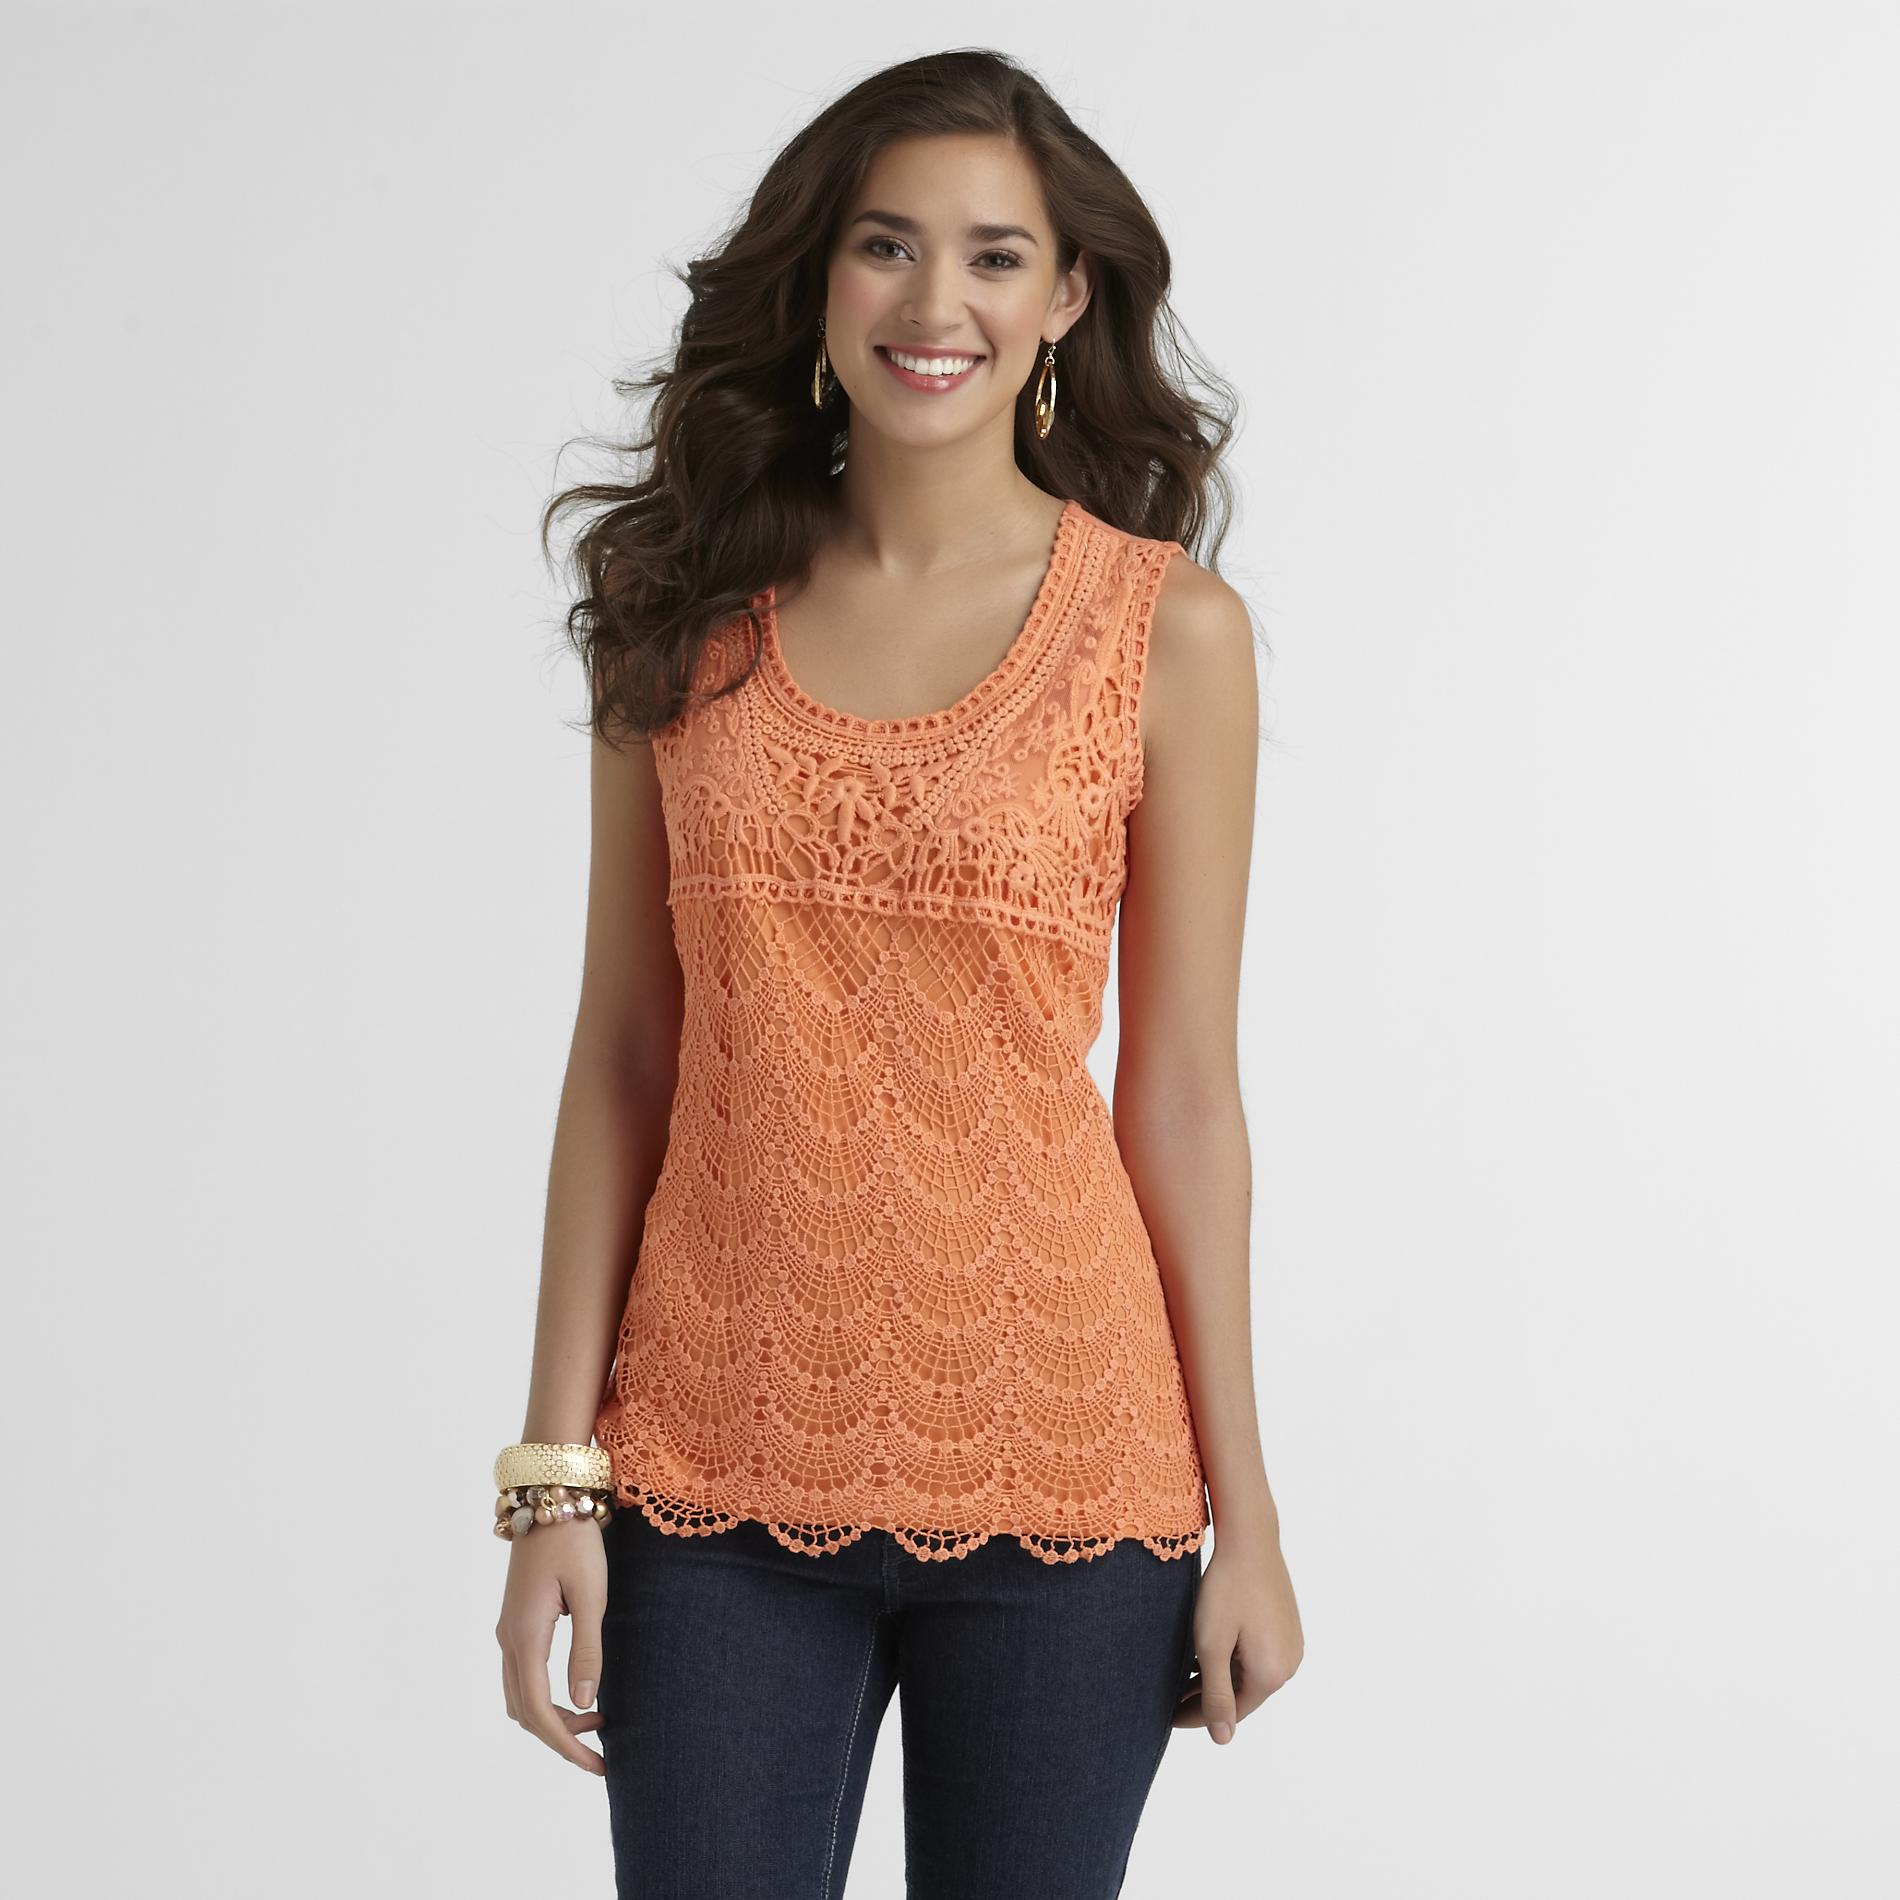 Grisbi Women's Lace Tank Top at Sears.com